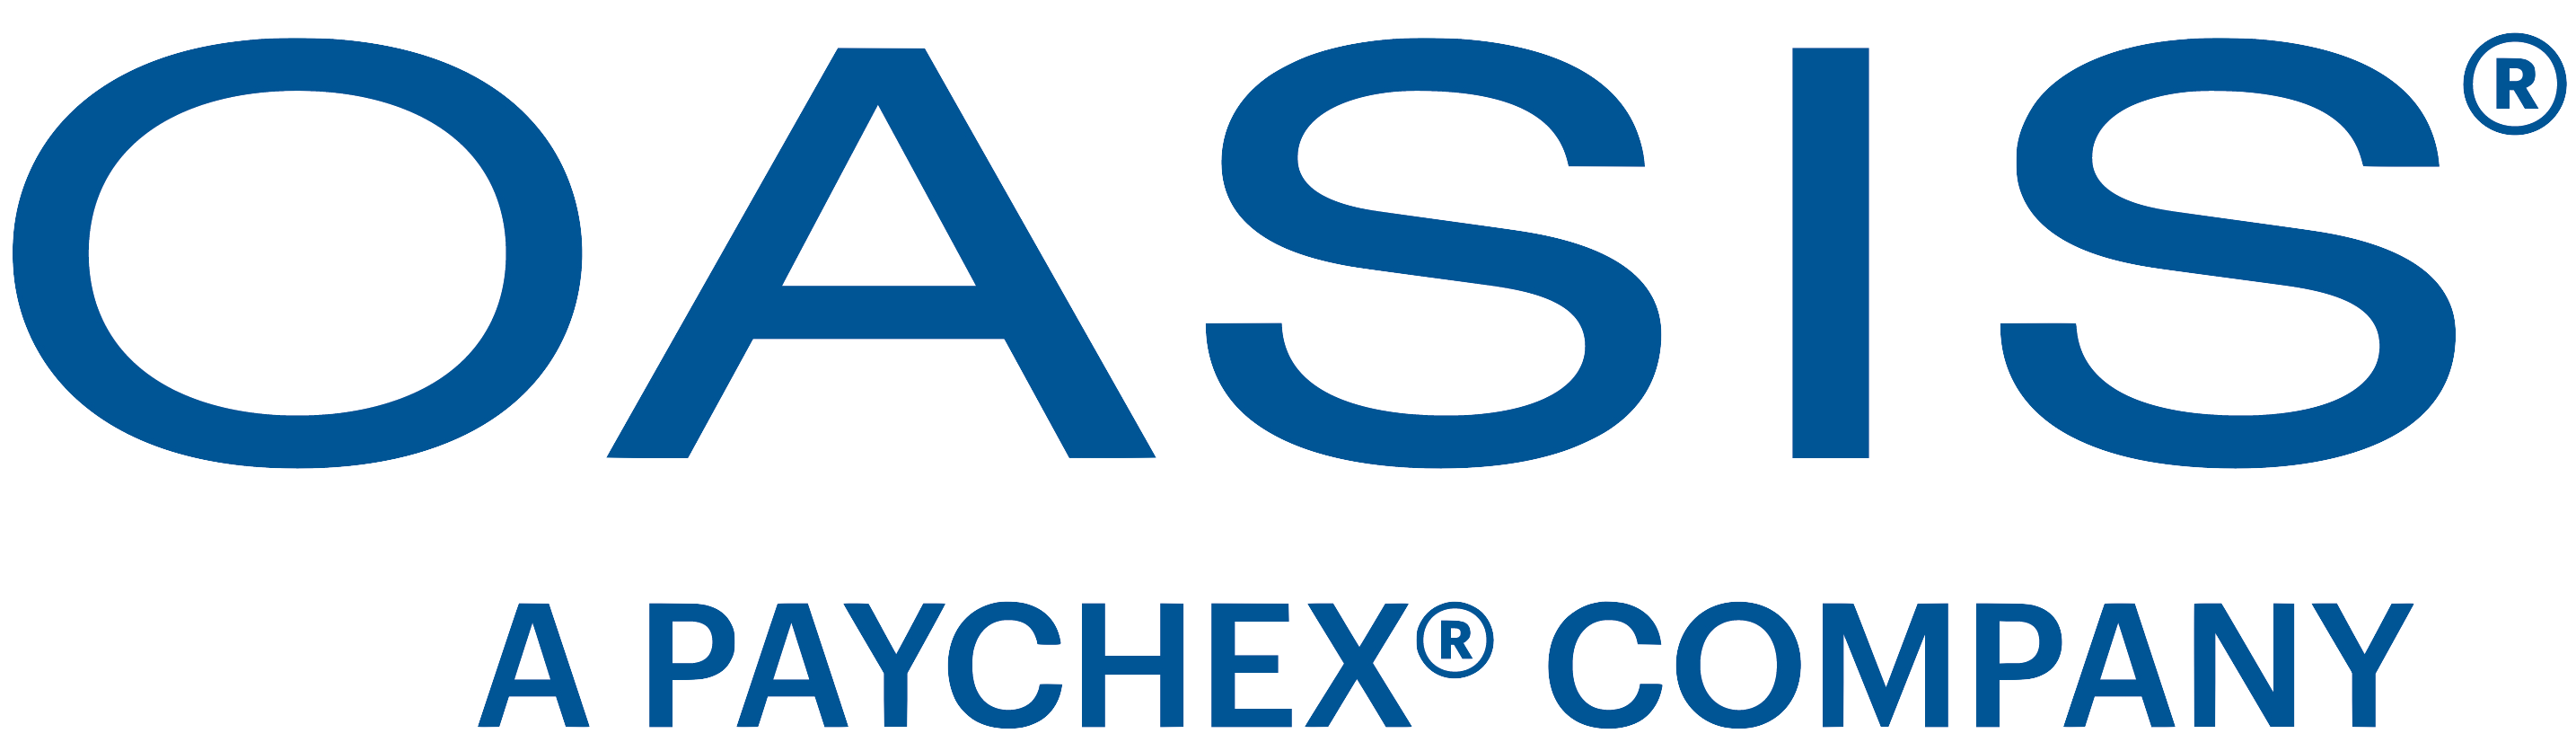 Oasis-Paychex-logo-blue